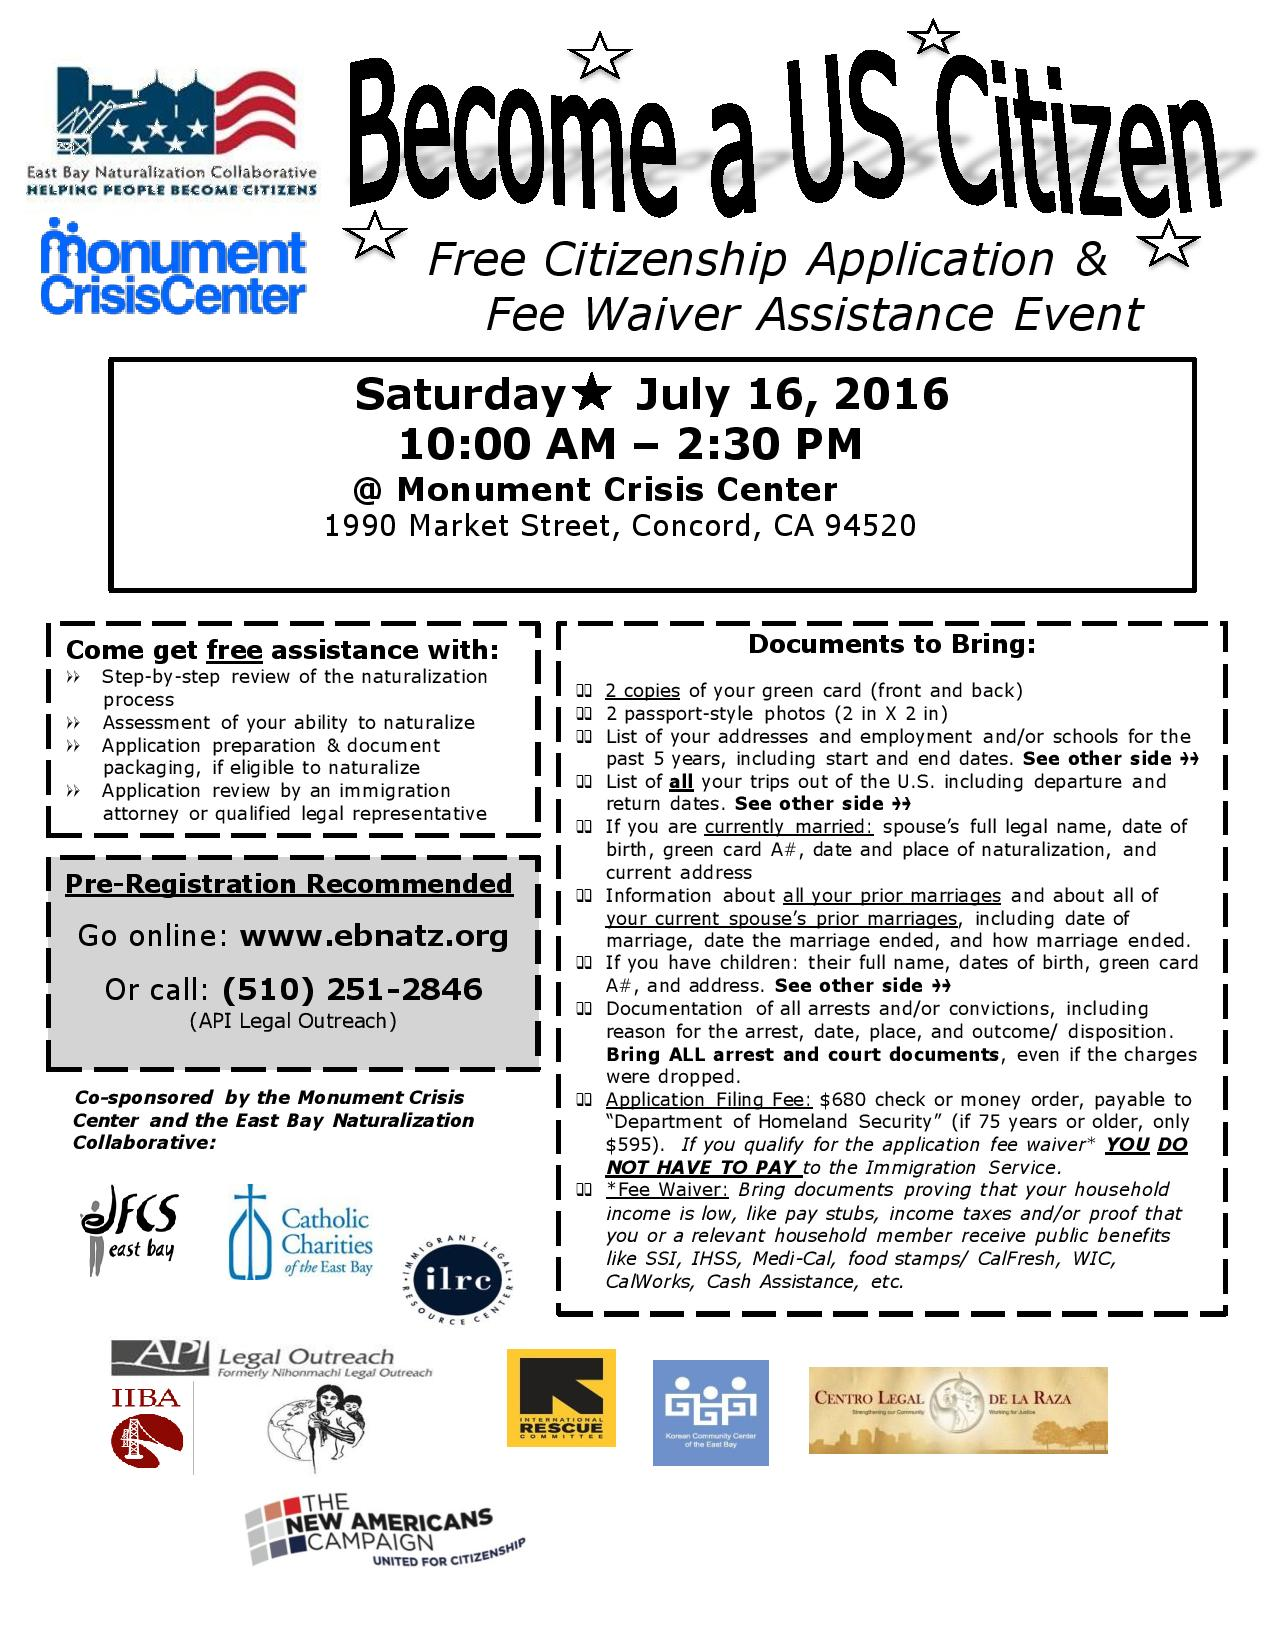 Citizenship workshop concord july 16th 2016 east bay ebnatz nac english concord july 16 2016 flyer page 001 free citizenship application falaconquin